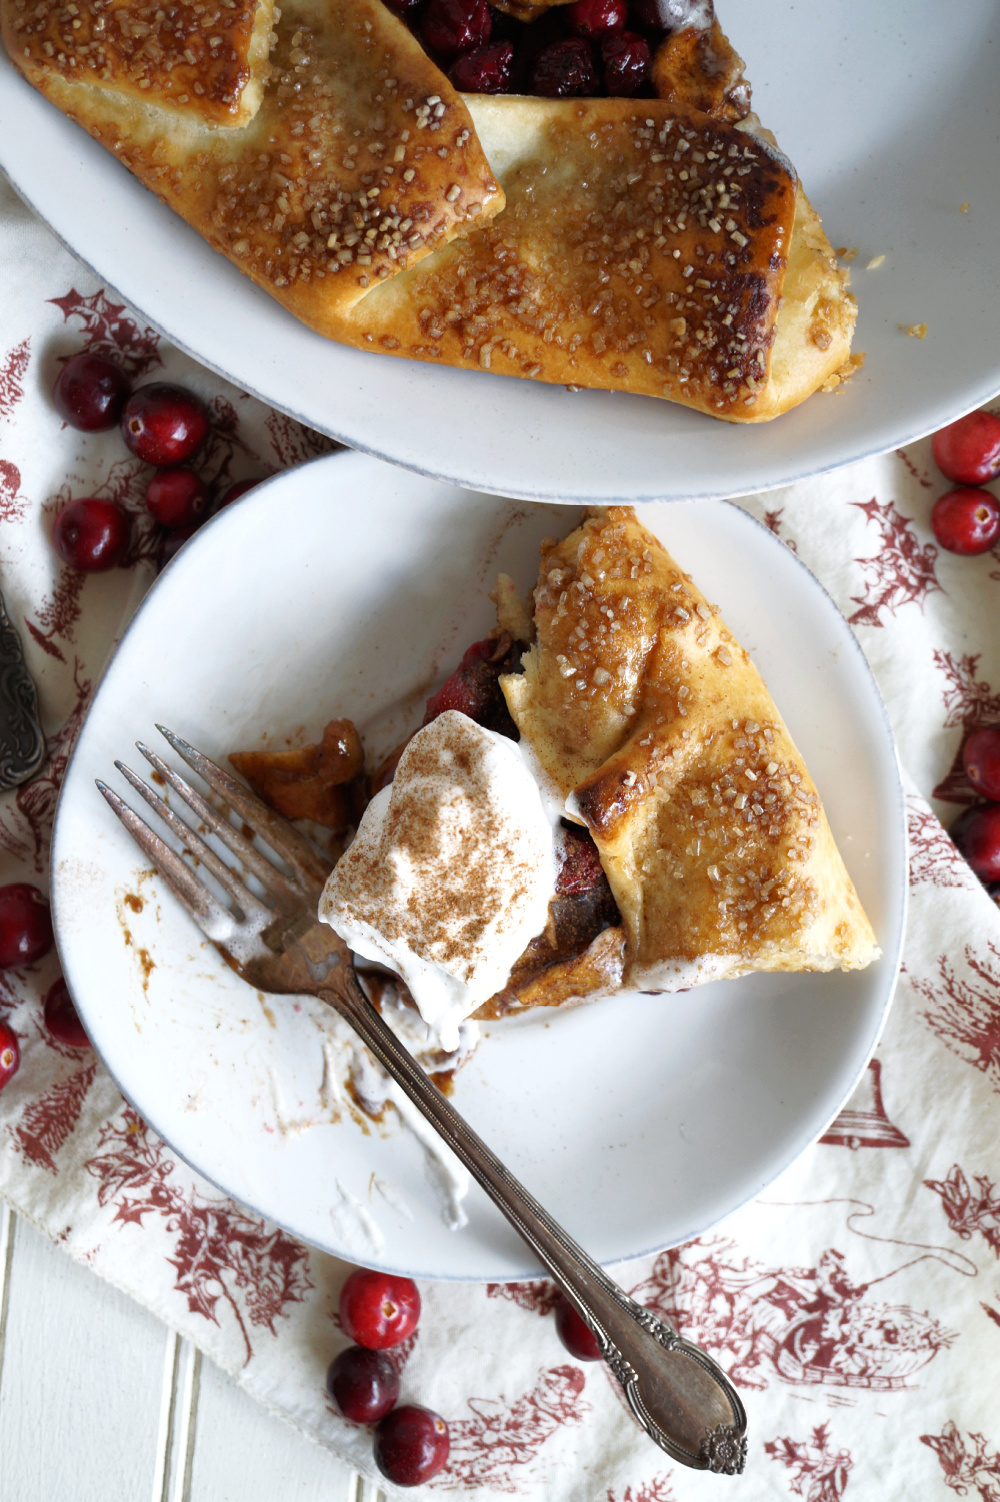 slice of galette on a plate with fork